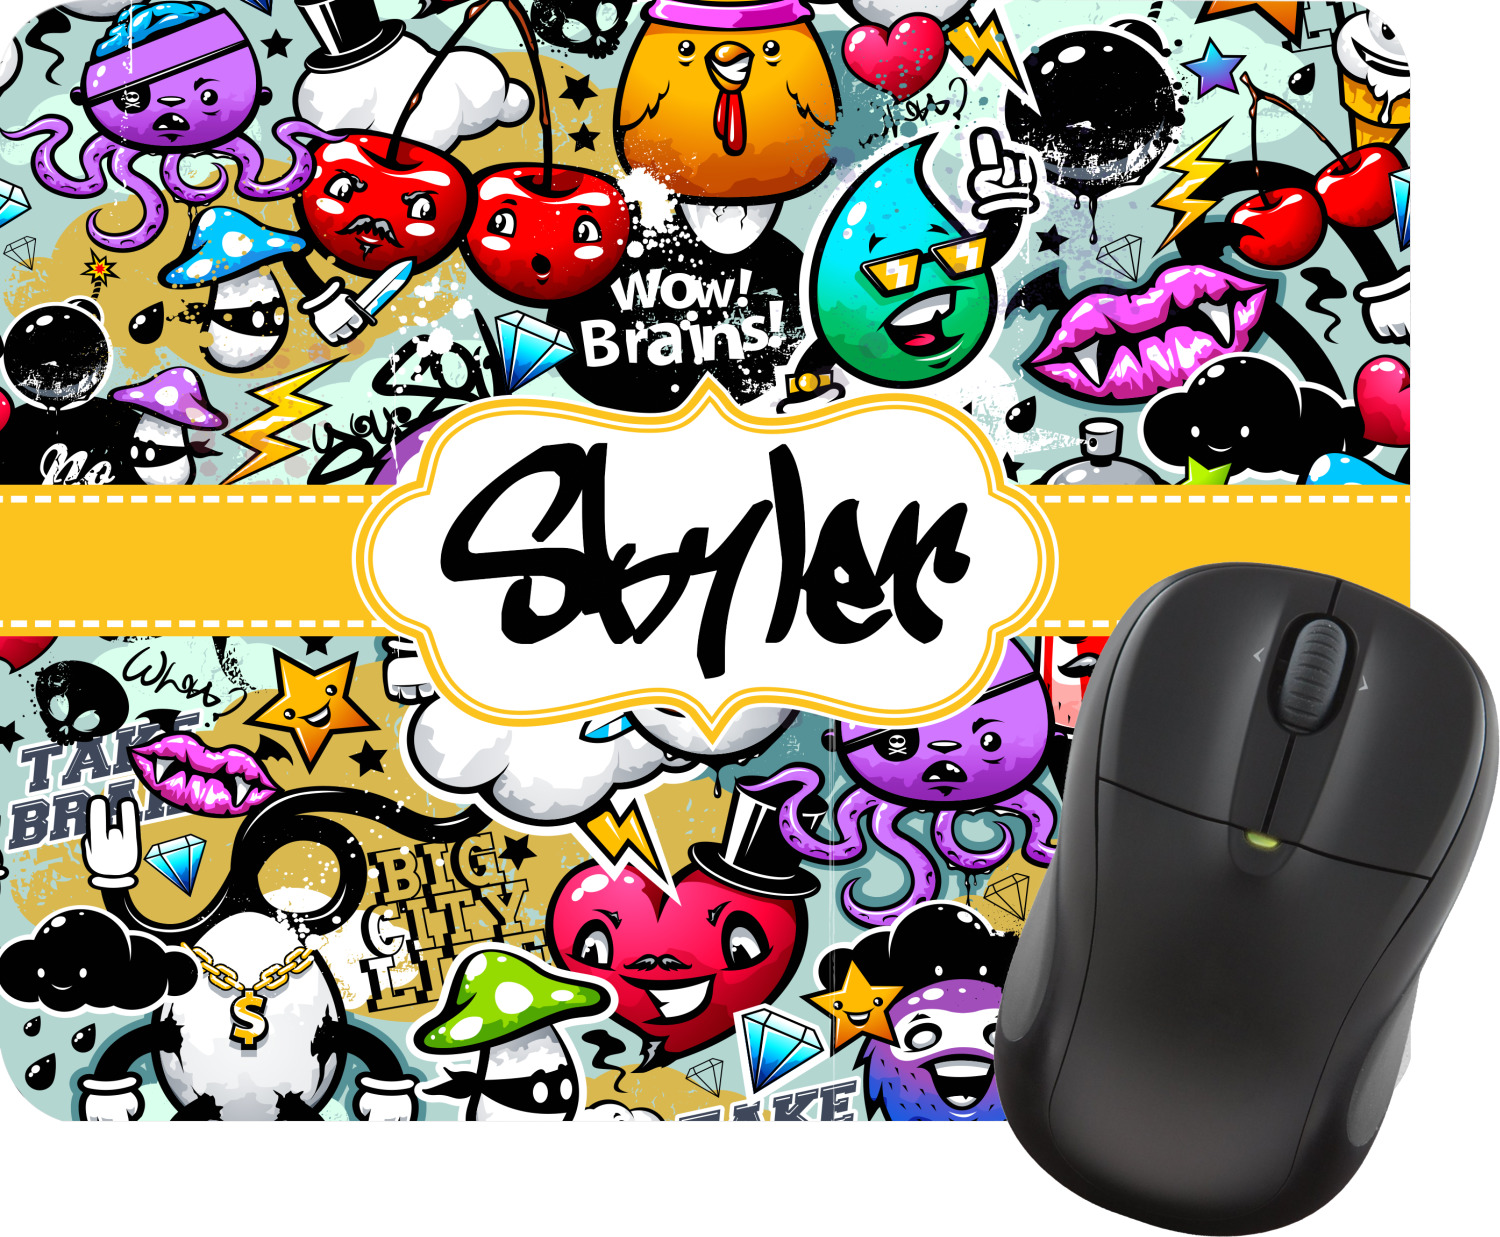 Comfortable Graffiti Mouse Pad Graffiti Mouse Pad Youcustomizeit Personalized Mouse Pads Costco Personalized Mouse Pads Philippines custom Personalized Mouse Pads